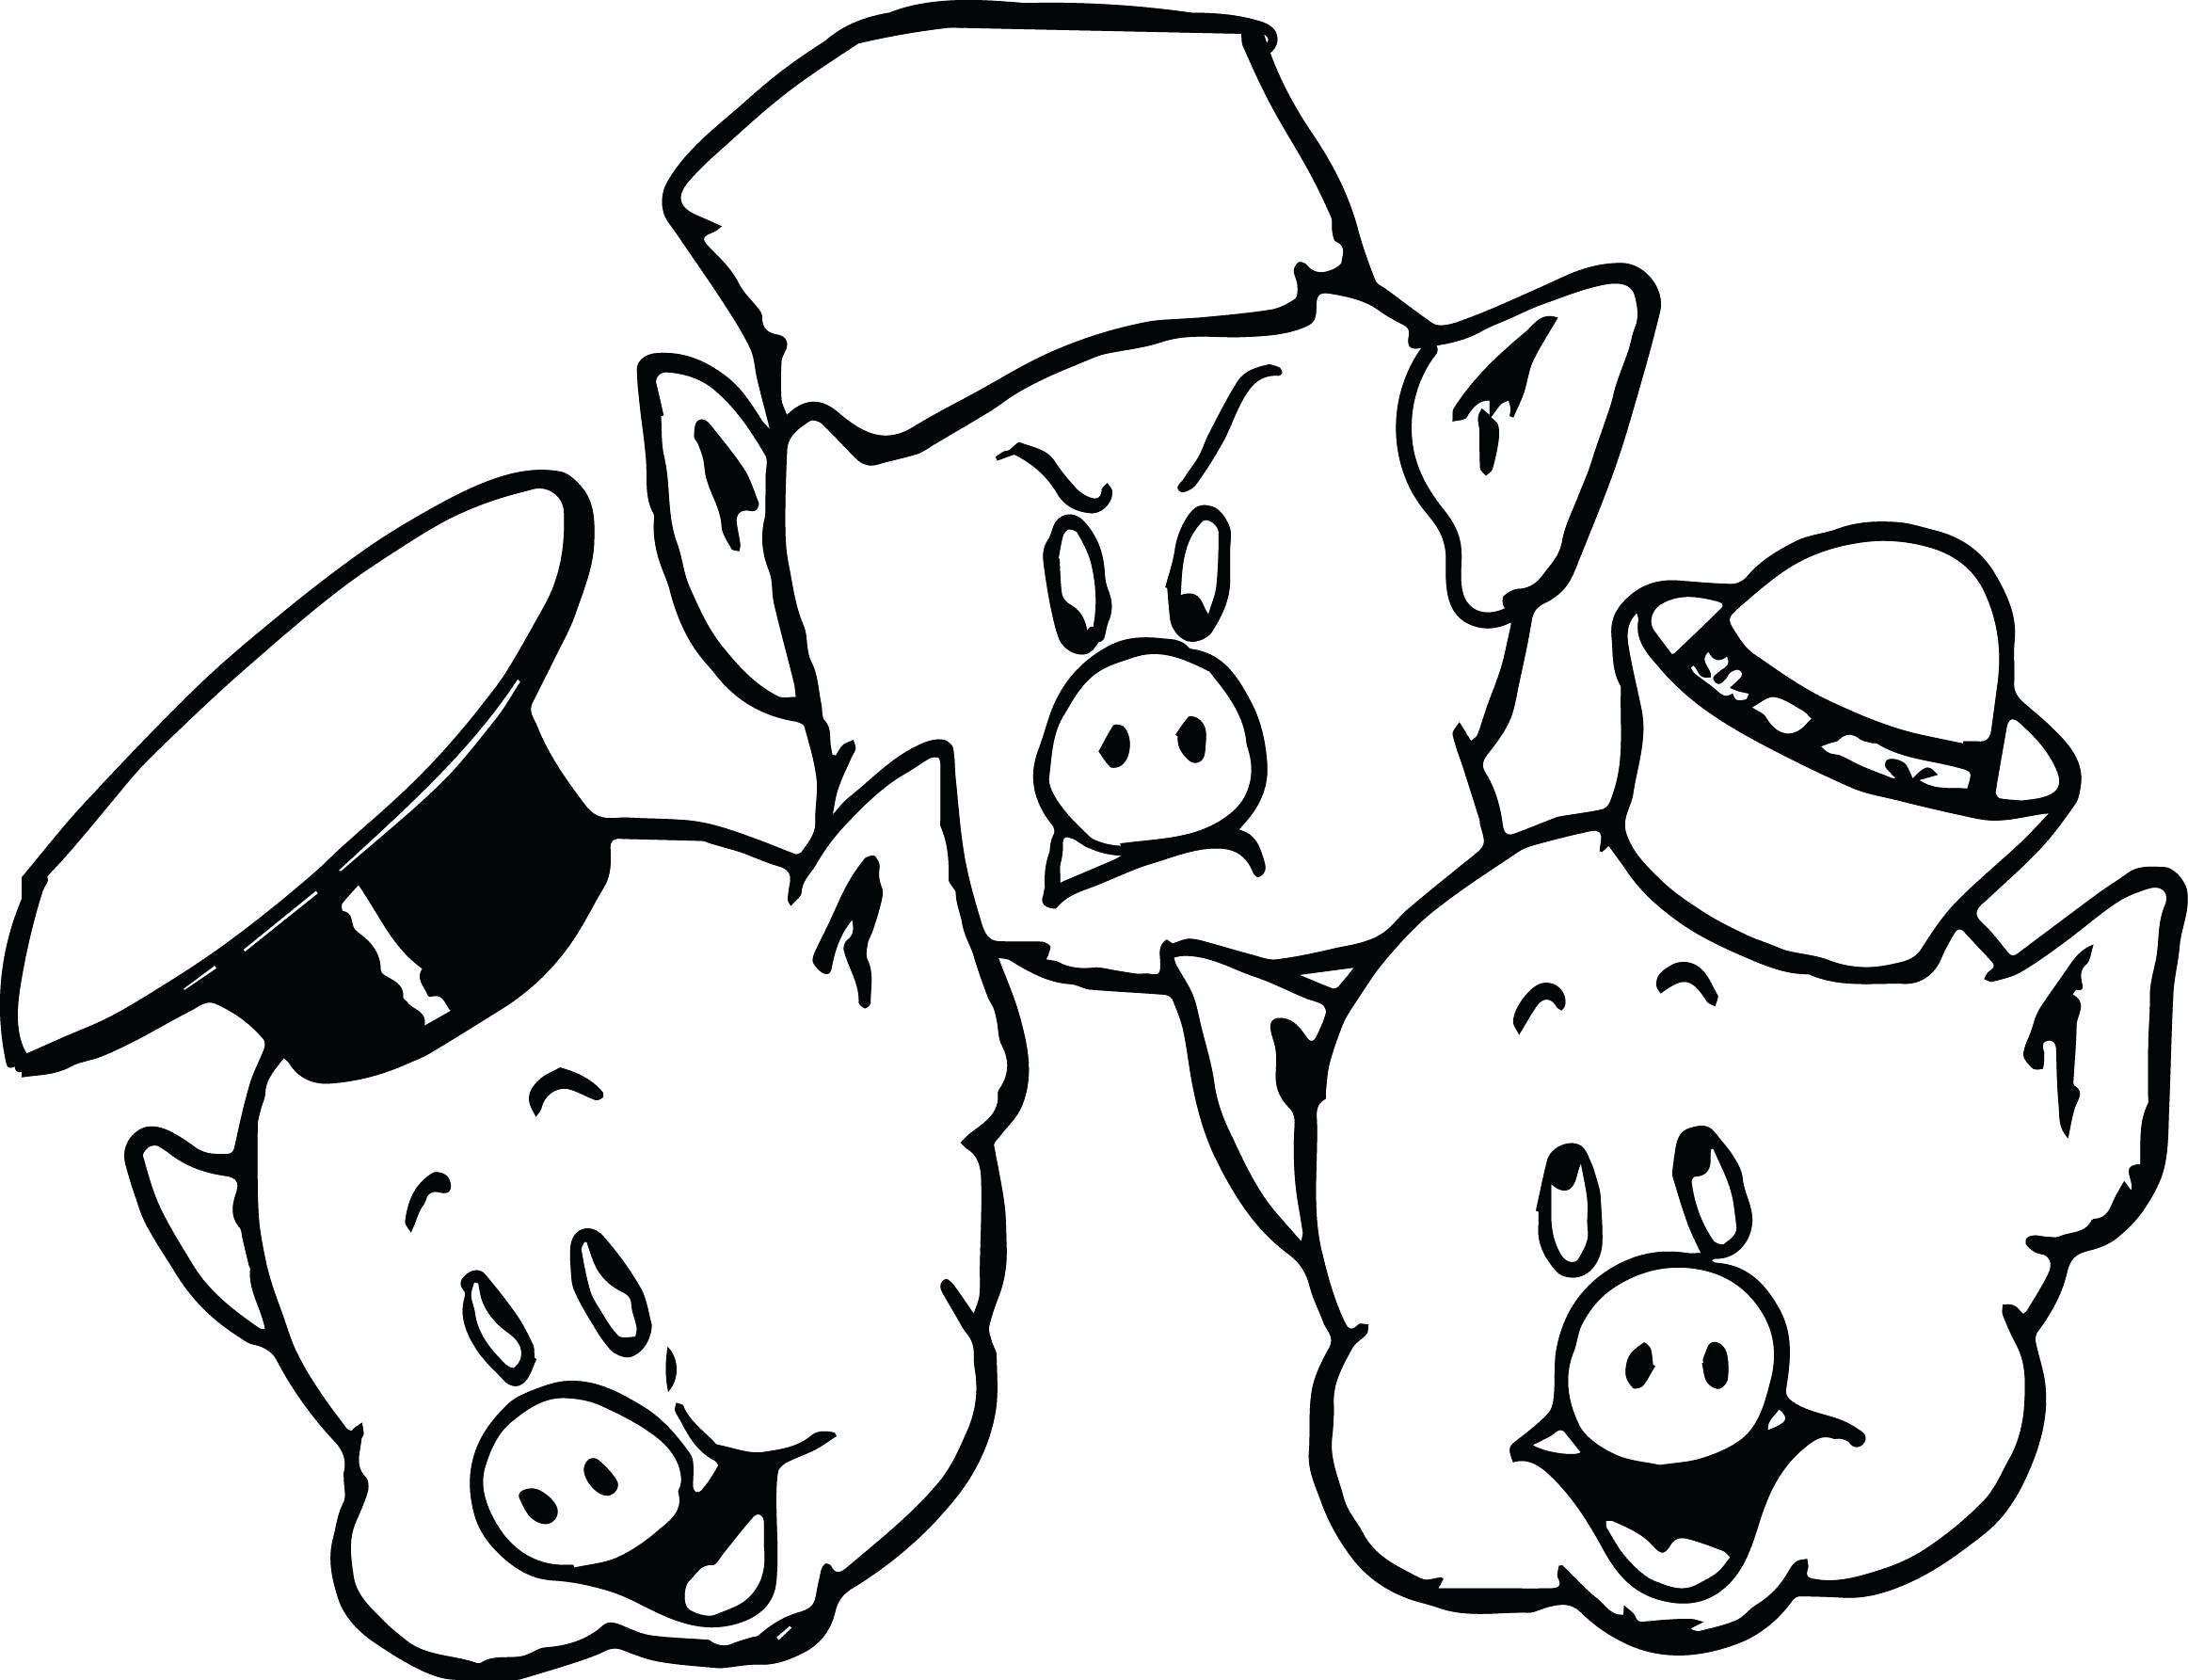 2325x1785 Coloring Printable Pig Pages Sheet 3 Little Pigs Cartoon